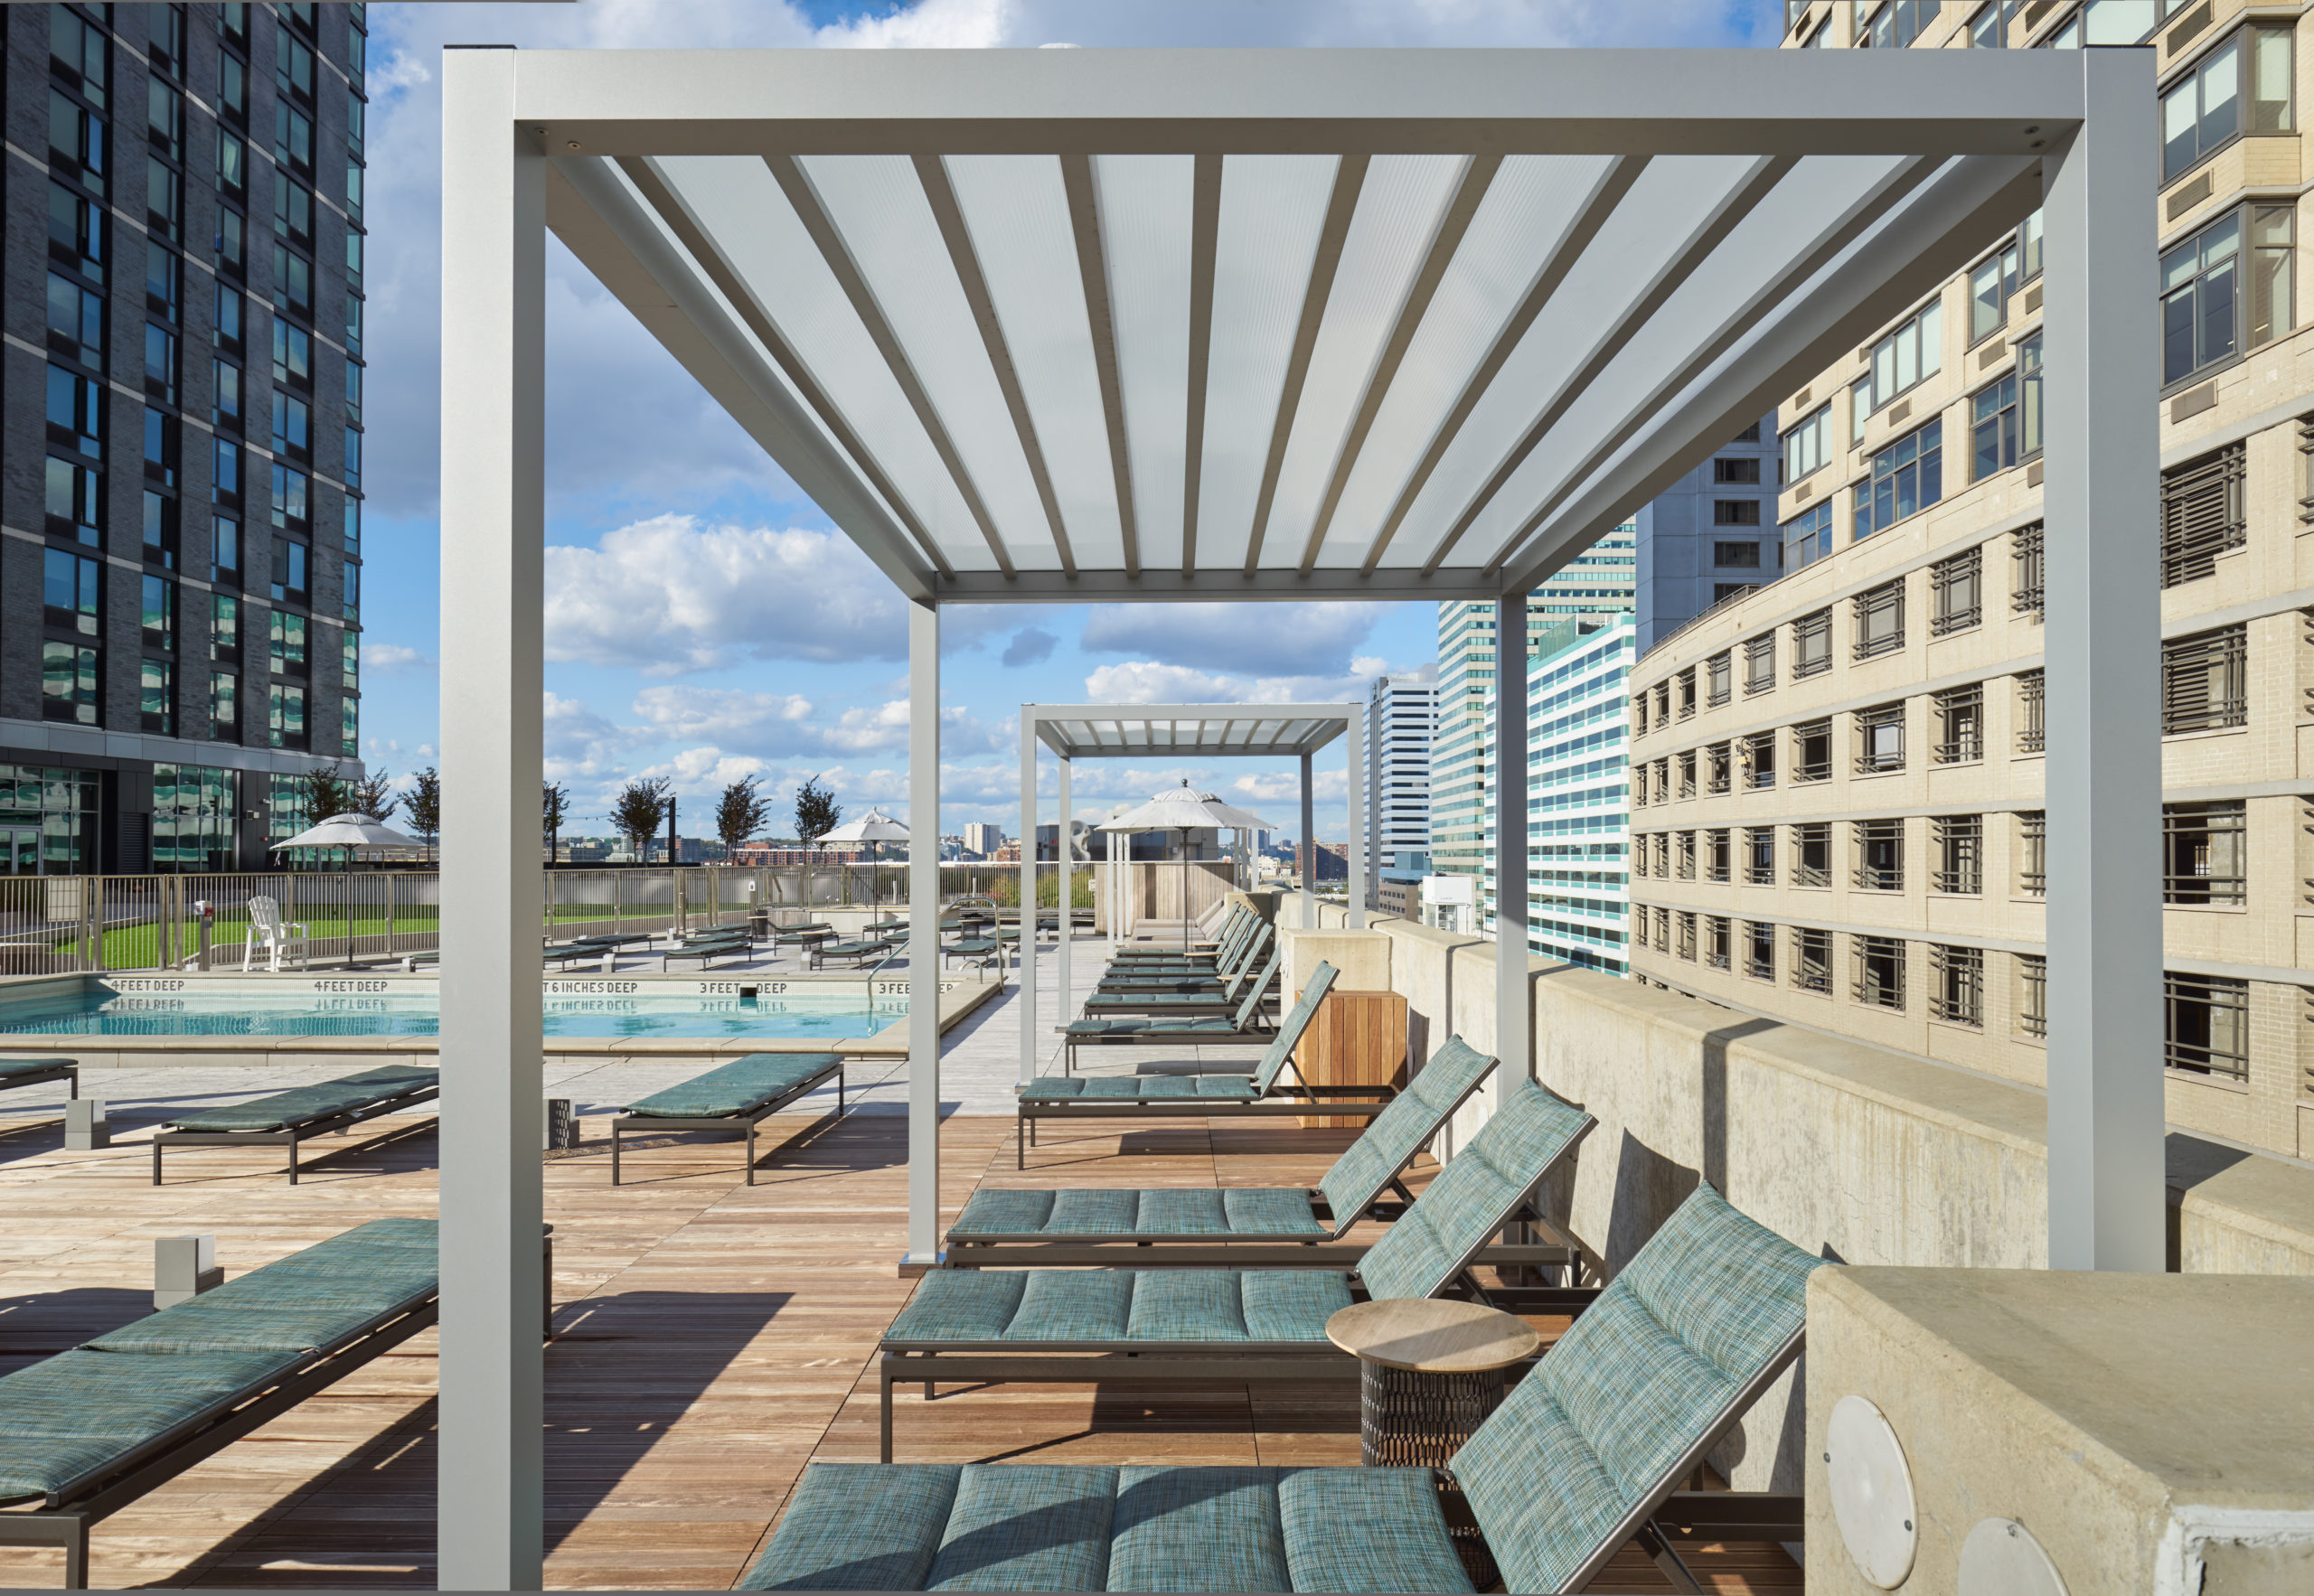 vyv south rooftop lounge chairs by the pool